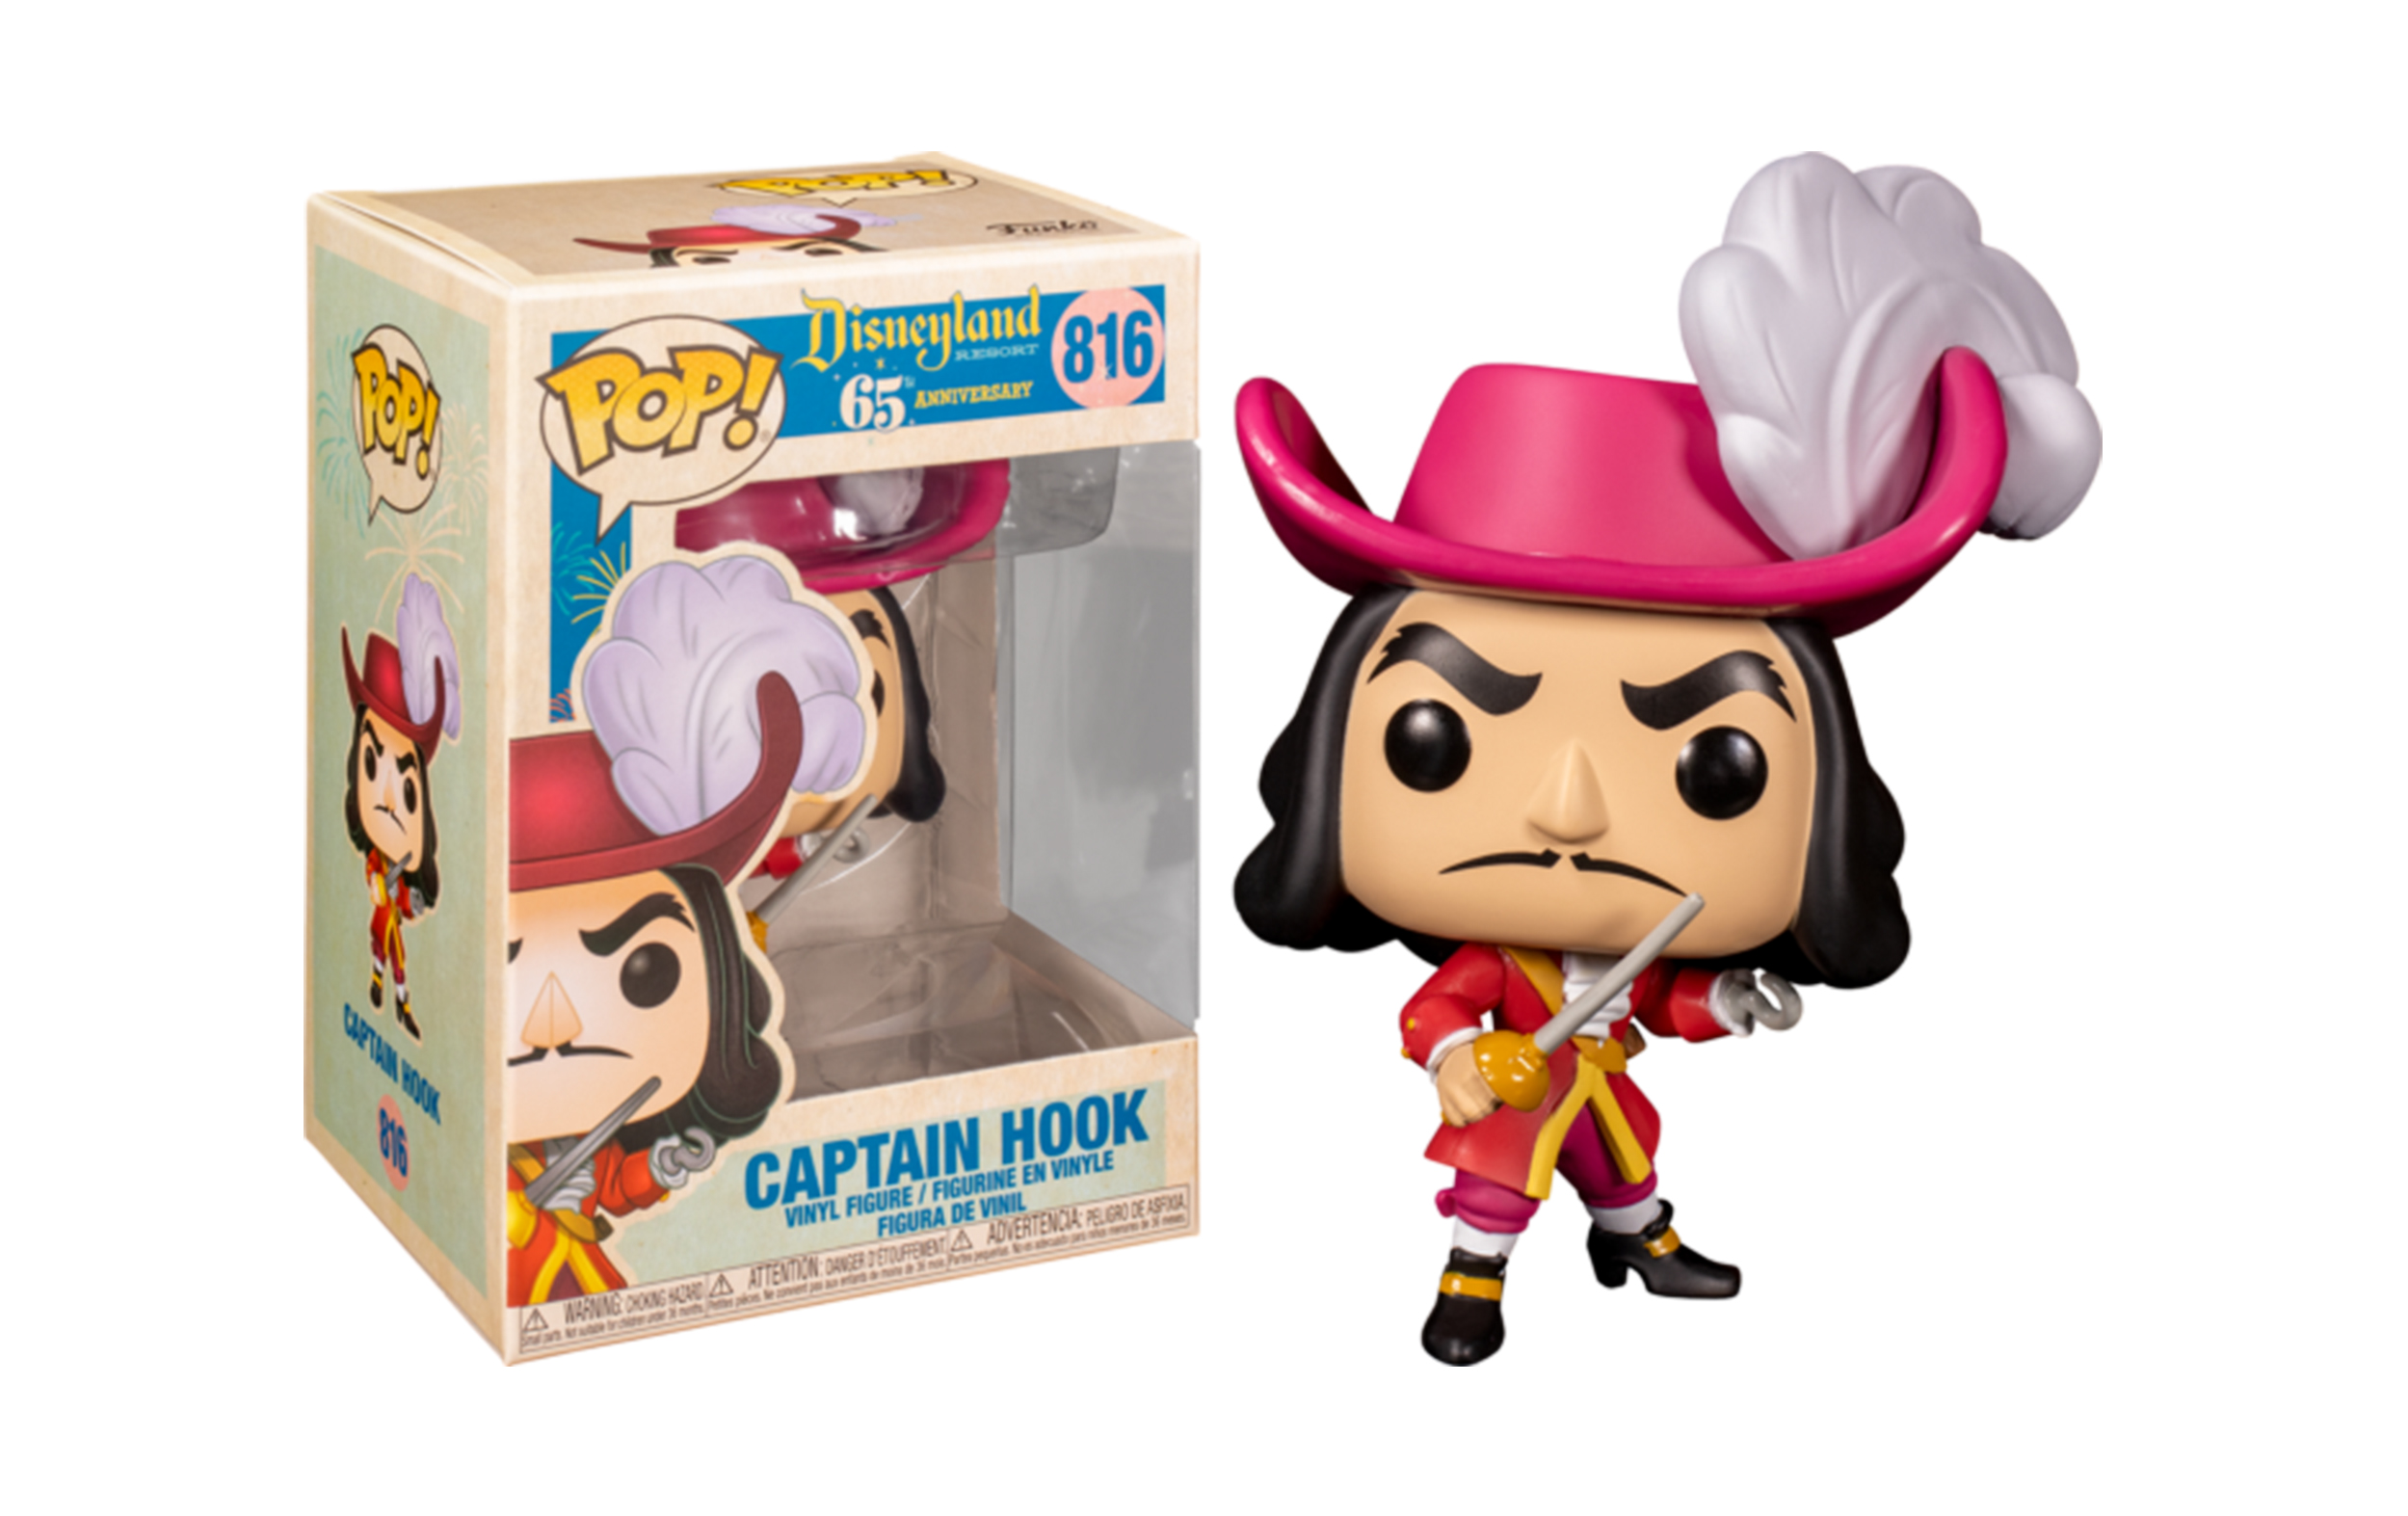 Disneyland 65th Anniversary Captain Hook 816 Funko POP Figure